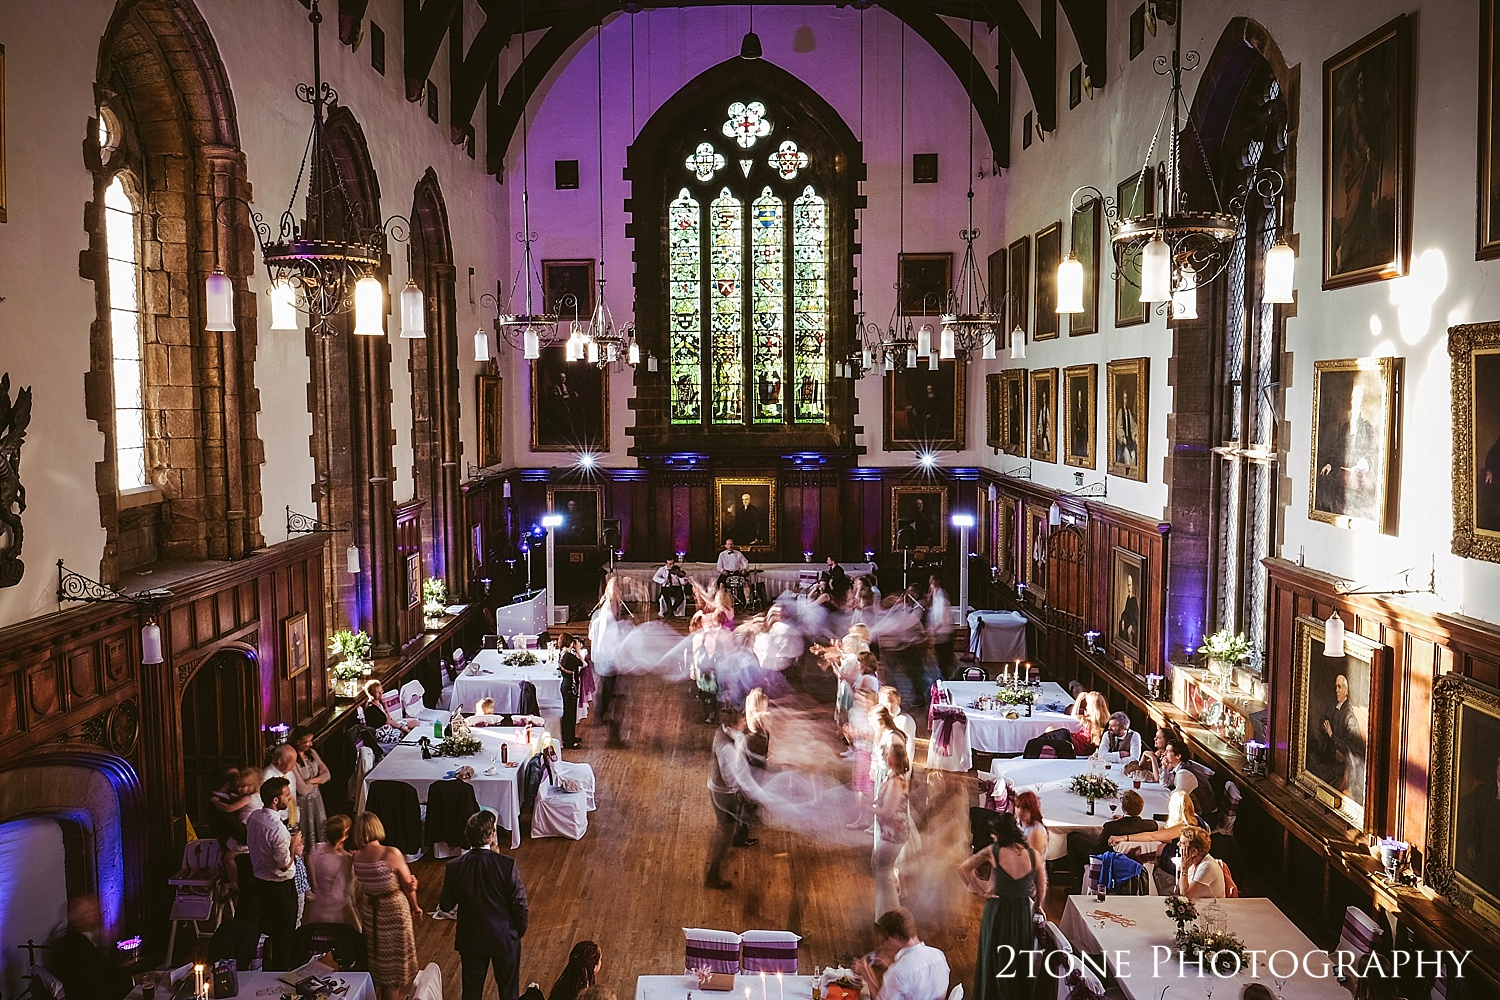 The Great Hall, Durham Castle by husband and wife team 2tone Photography www.2tonephotography.co.uk